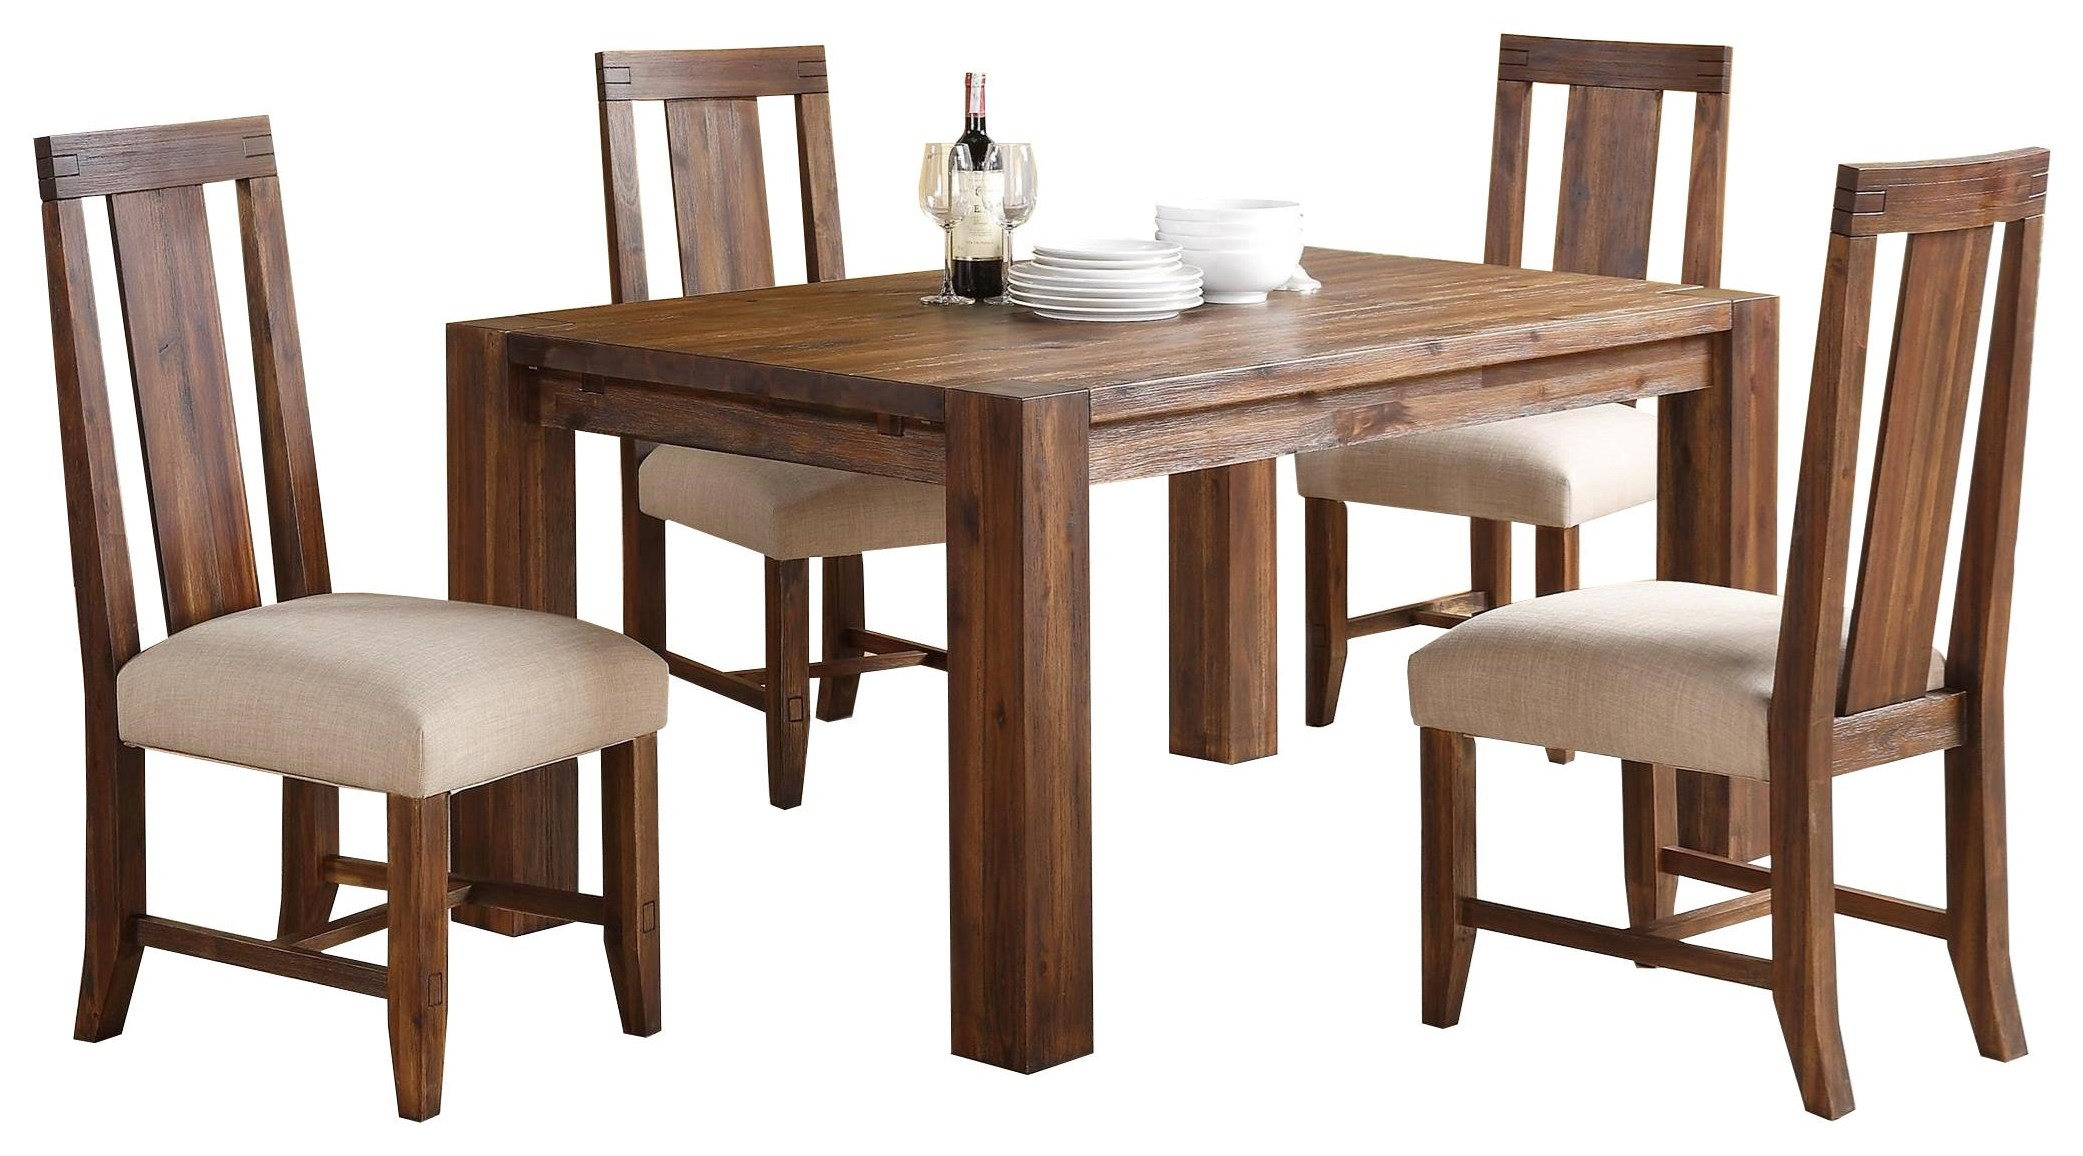 5-Piece Table & Chair Set at Sadler's Home Furnishings